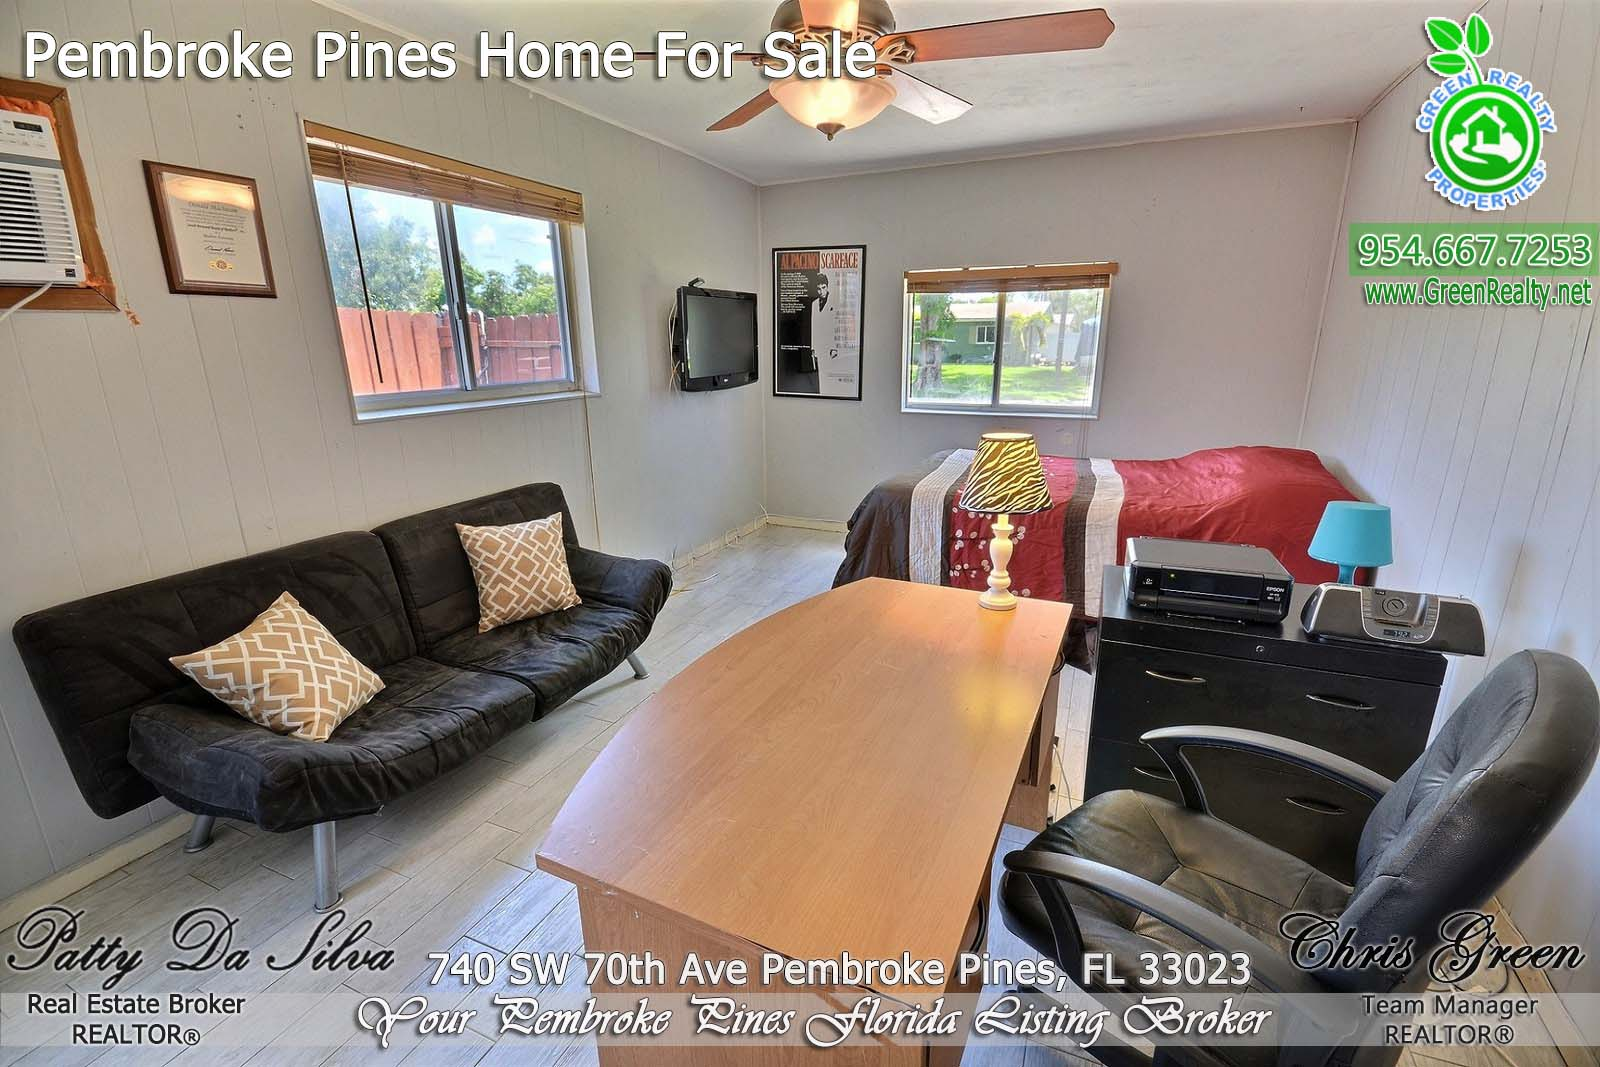 21 Pembroke Pines Real Estate Agents (3)